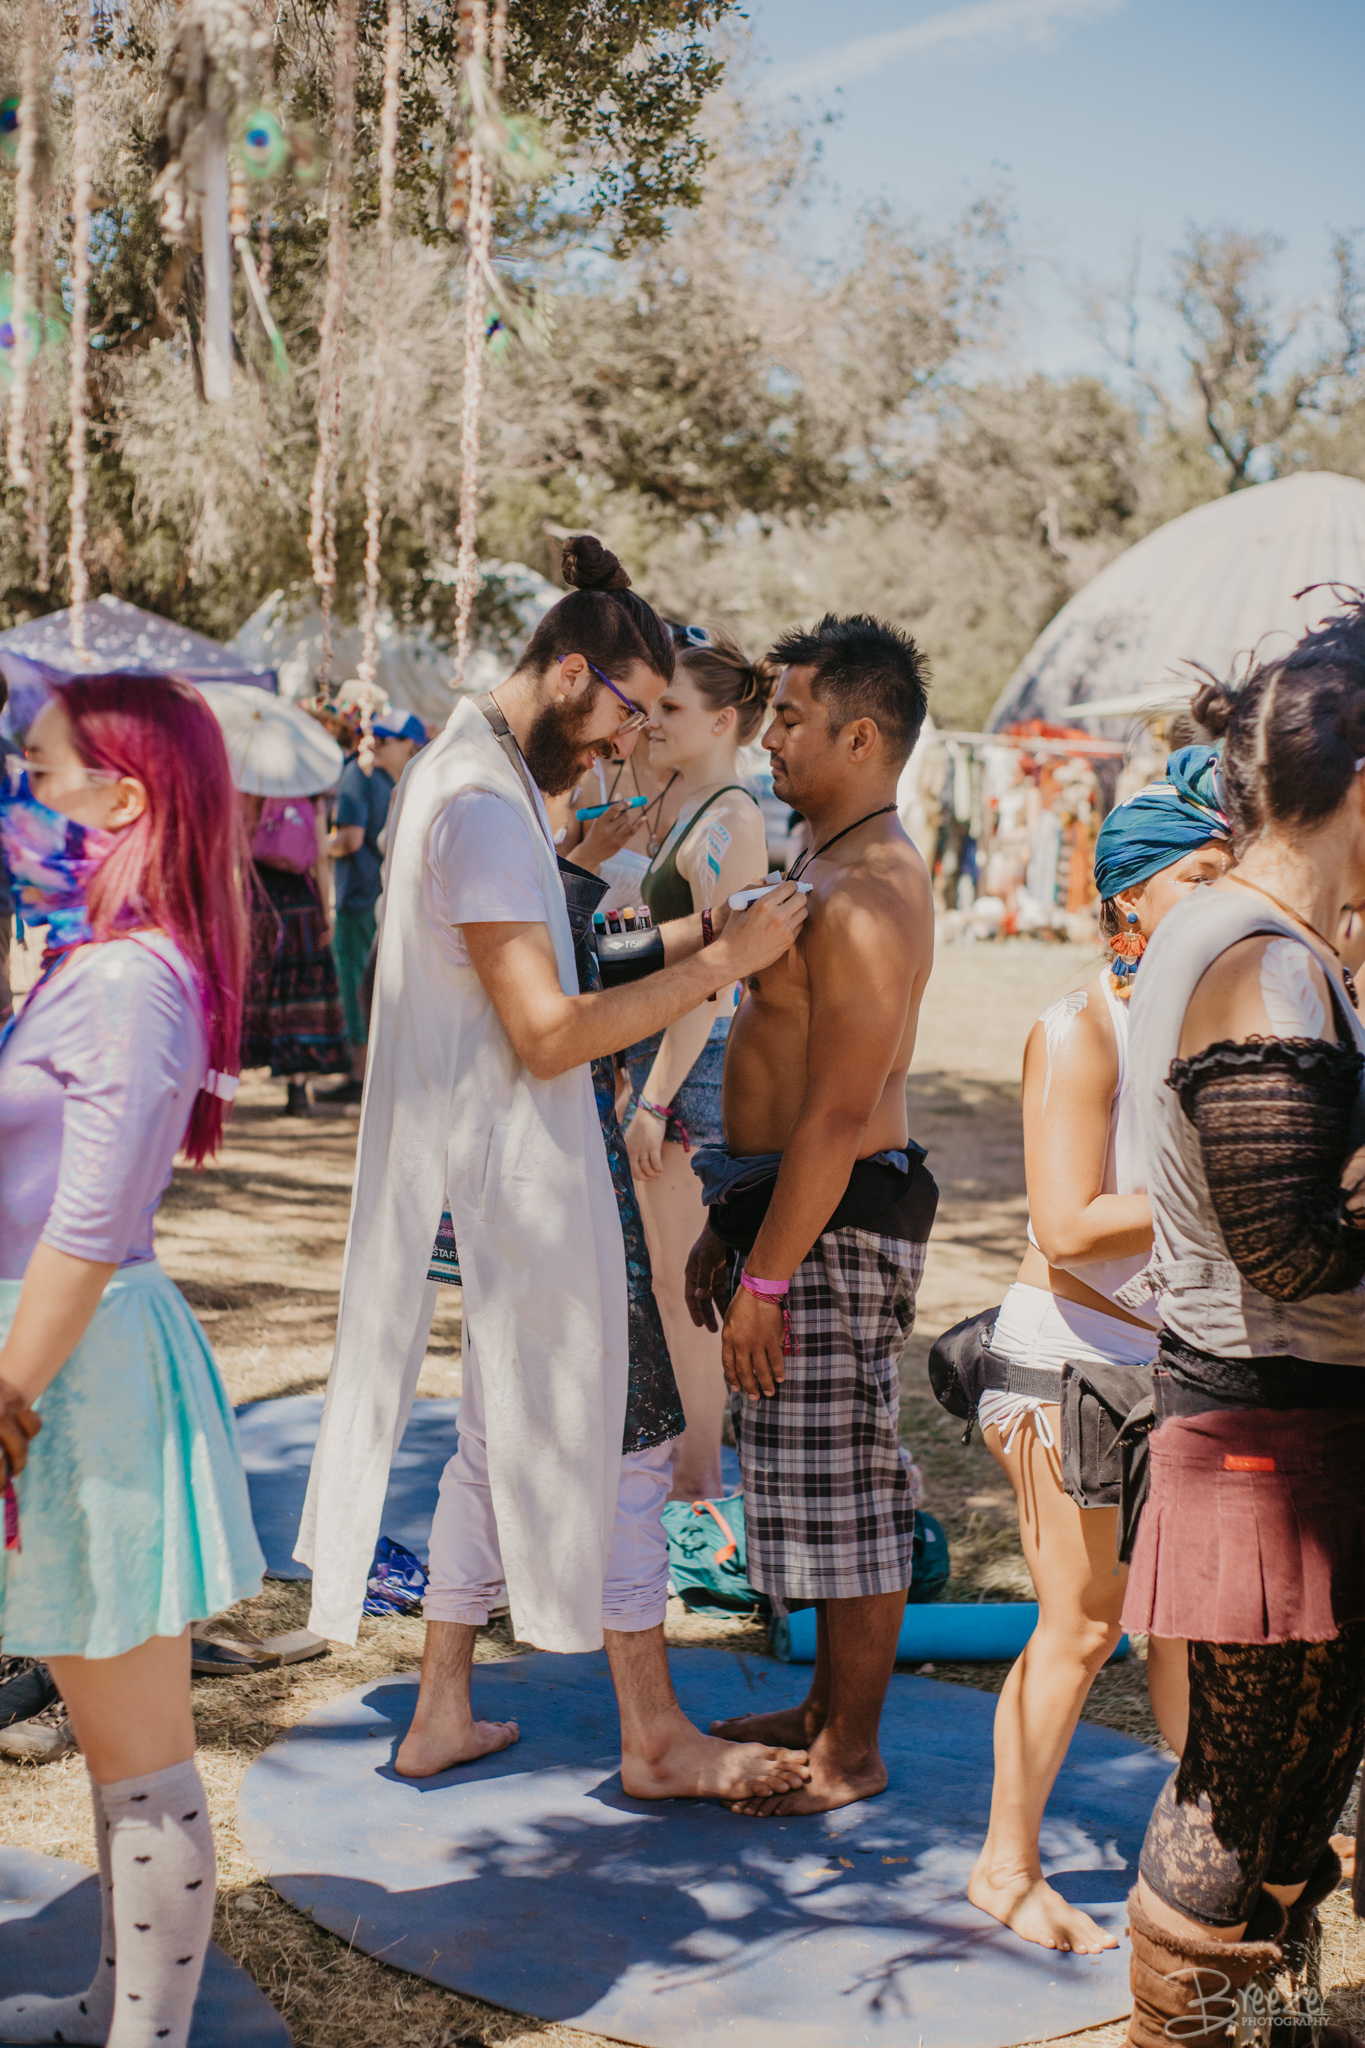 Lucidity.Festival.2019.Brie'Ana Breeze Photography and Media-6700.jpg